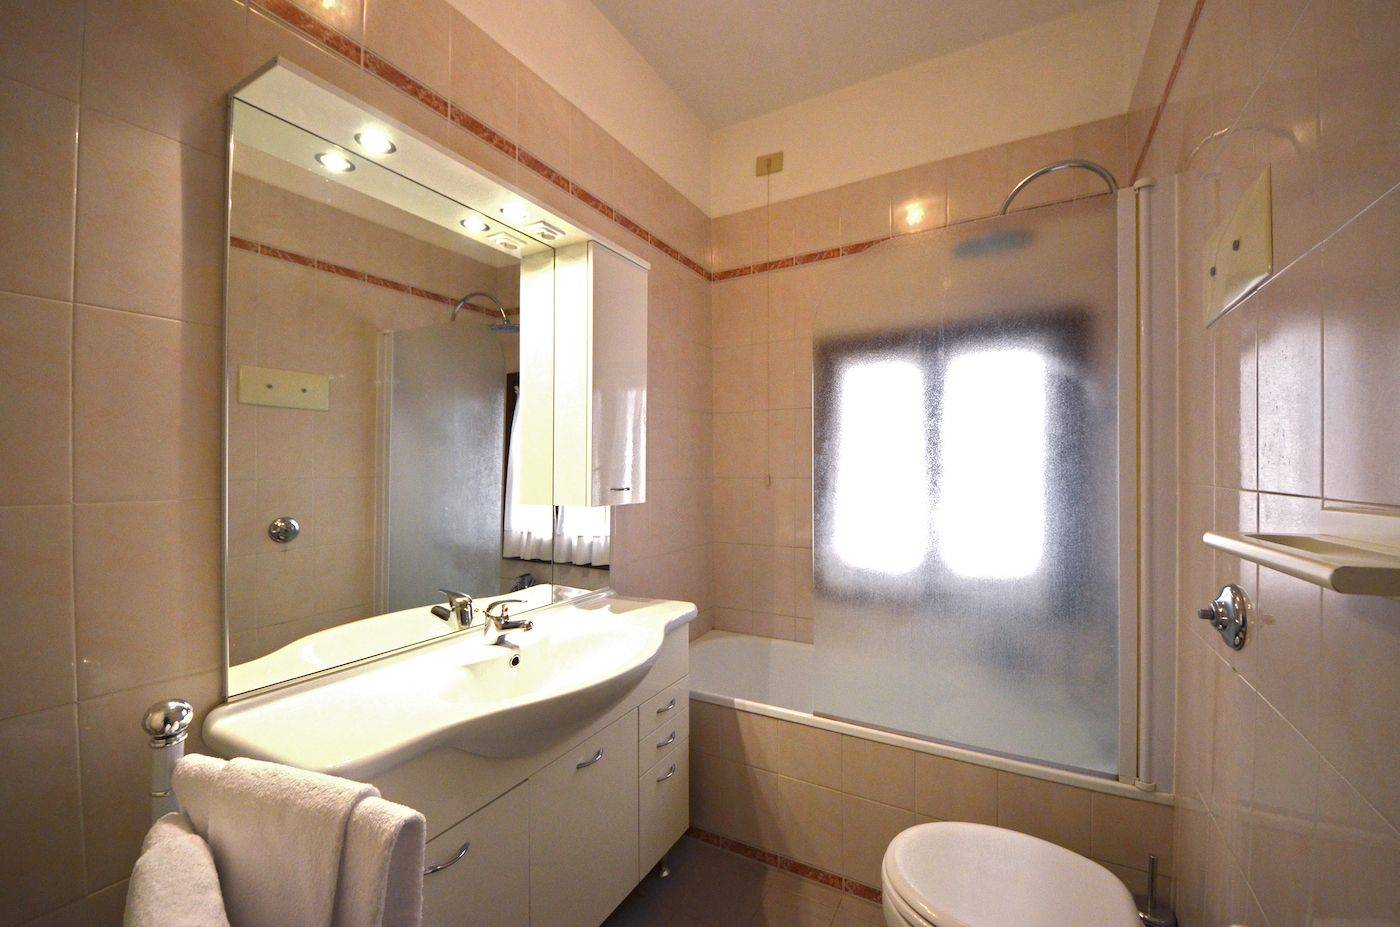 bathroom with baththub and shower